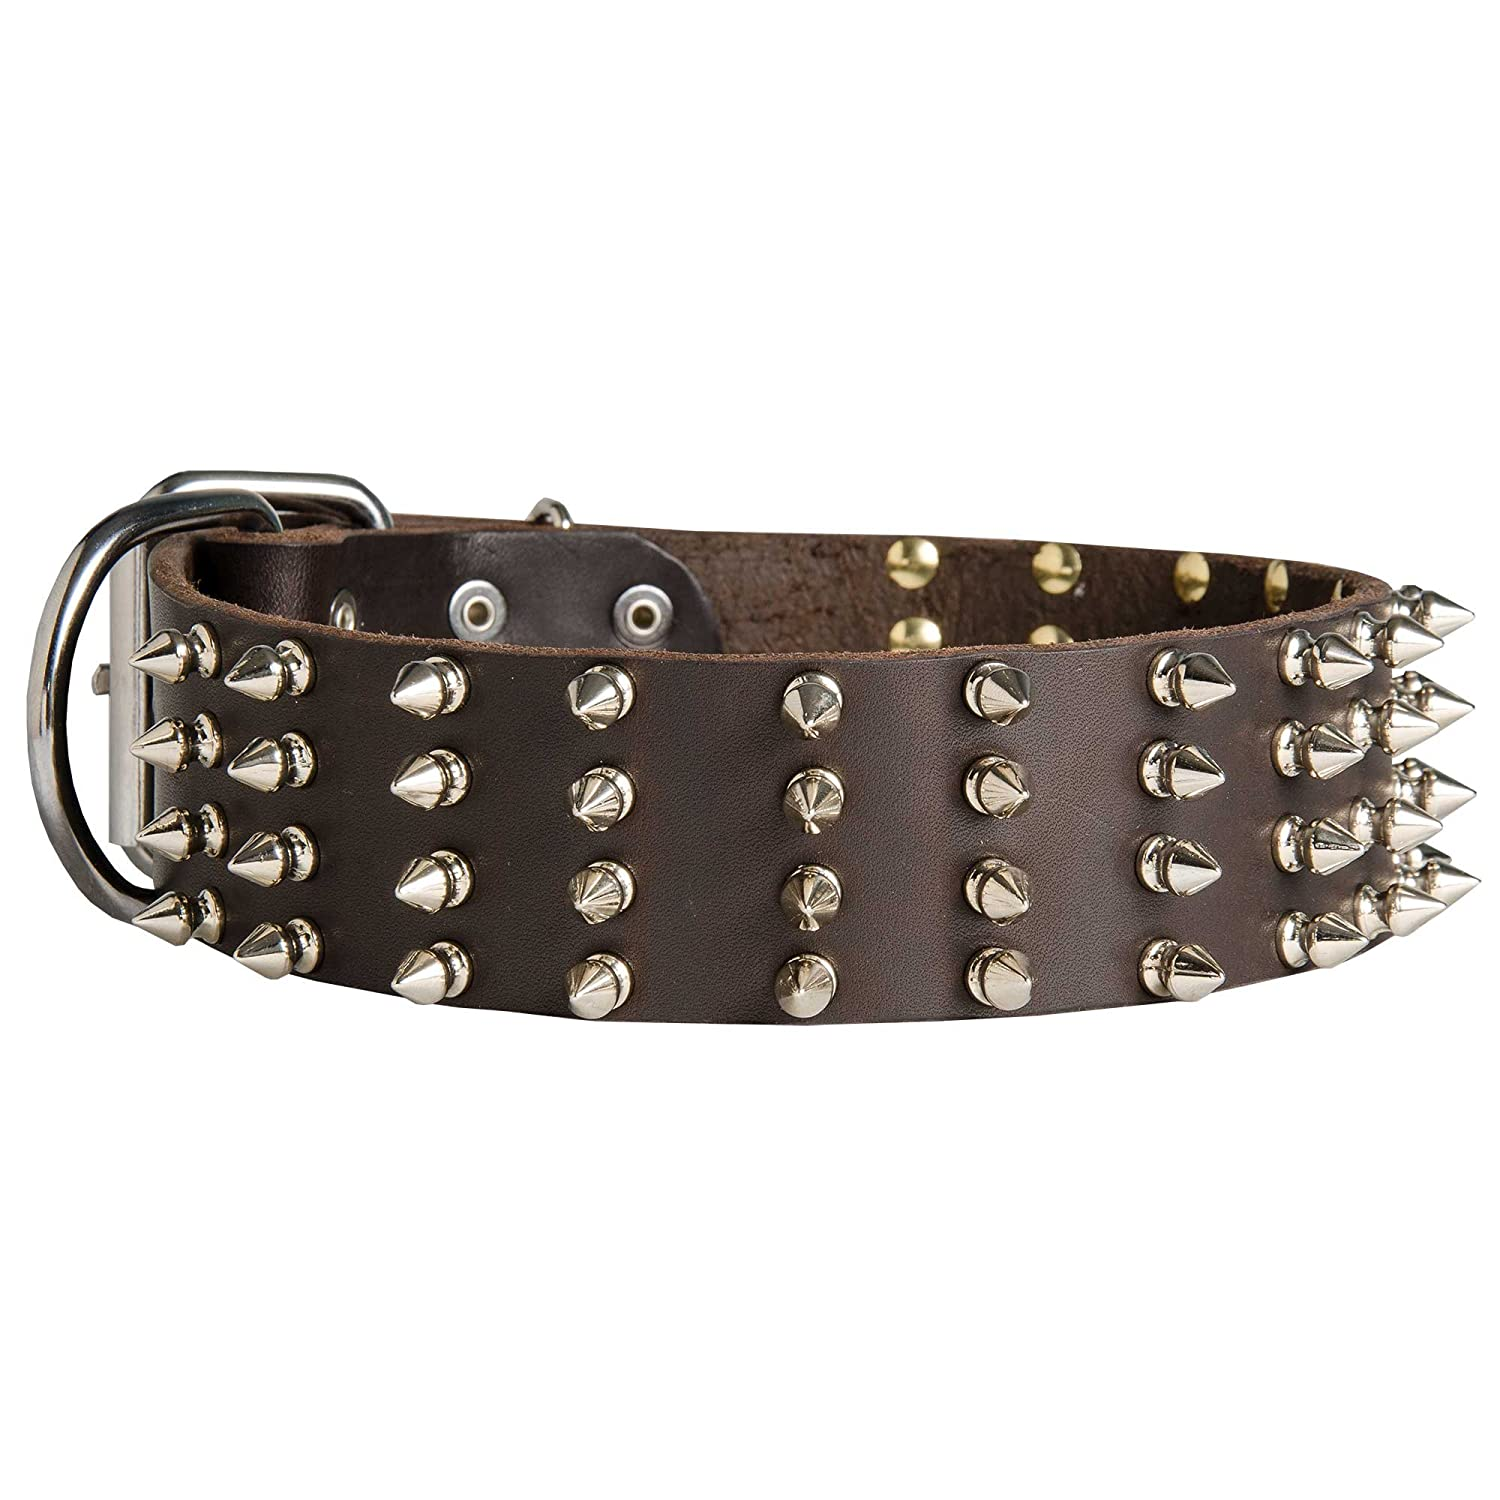 Black fits for 17 inch dog's neck size Black fits for 17 inch dog's neck size 17 inch Extra Wide Black Leather Spiked Dog Collar for Walking  Top Paw Style  2 inch (50 mm) wide